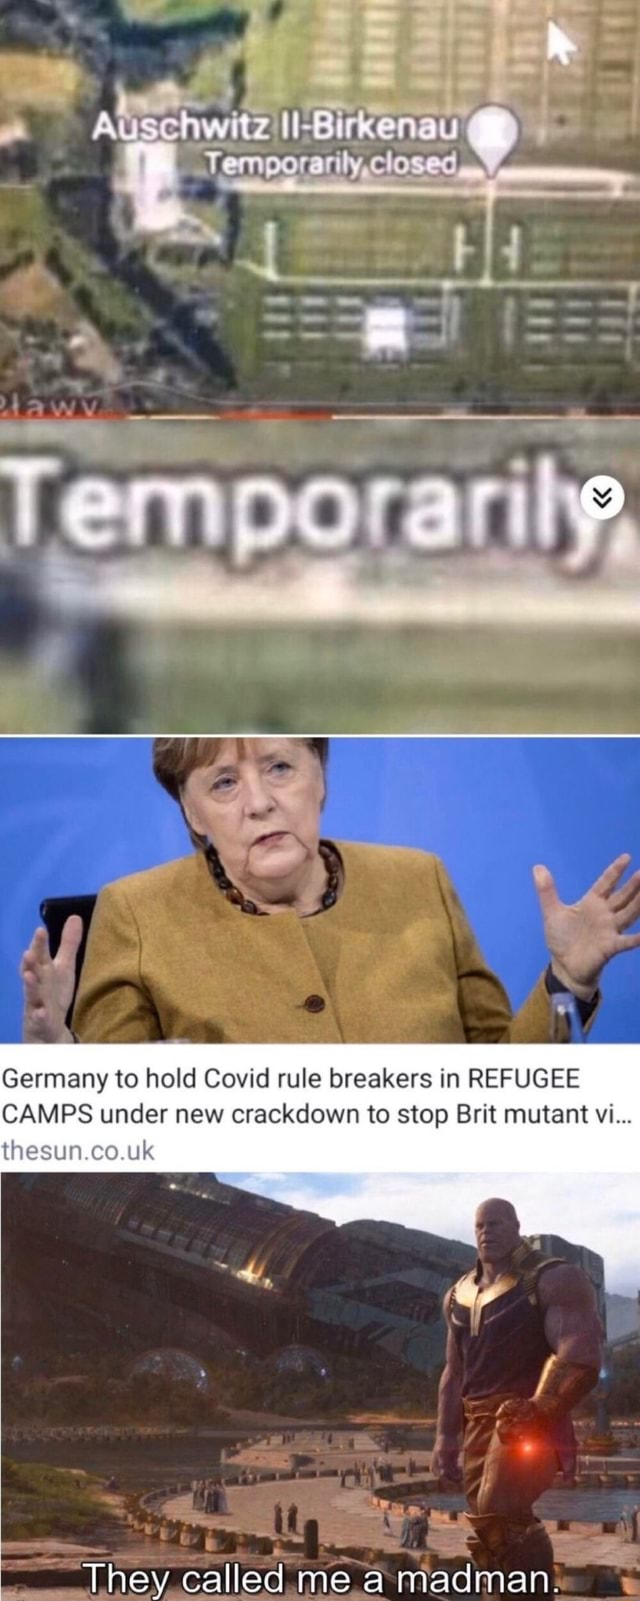 Co Germany to hold Covid rule breakers in REFUGEE CAMPS under new crackdown to stop Brit mutant vi thesun co uk They called me madman i meme